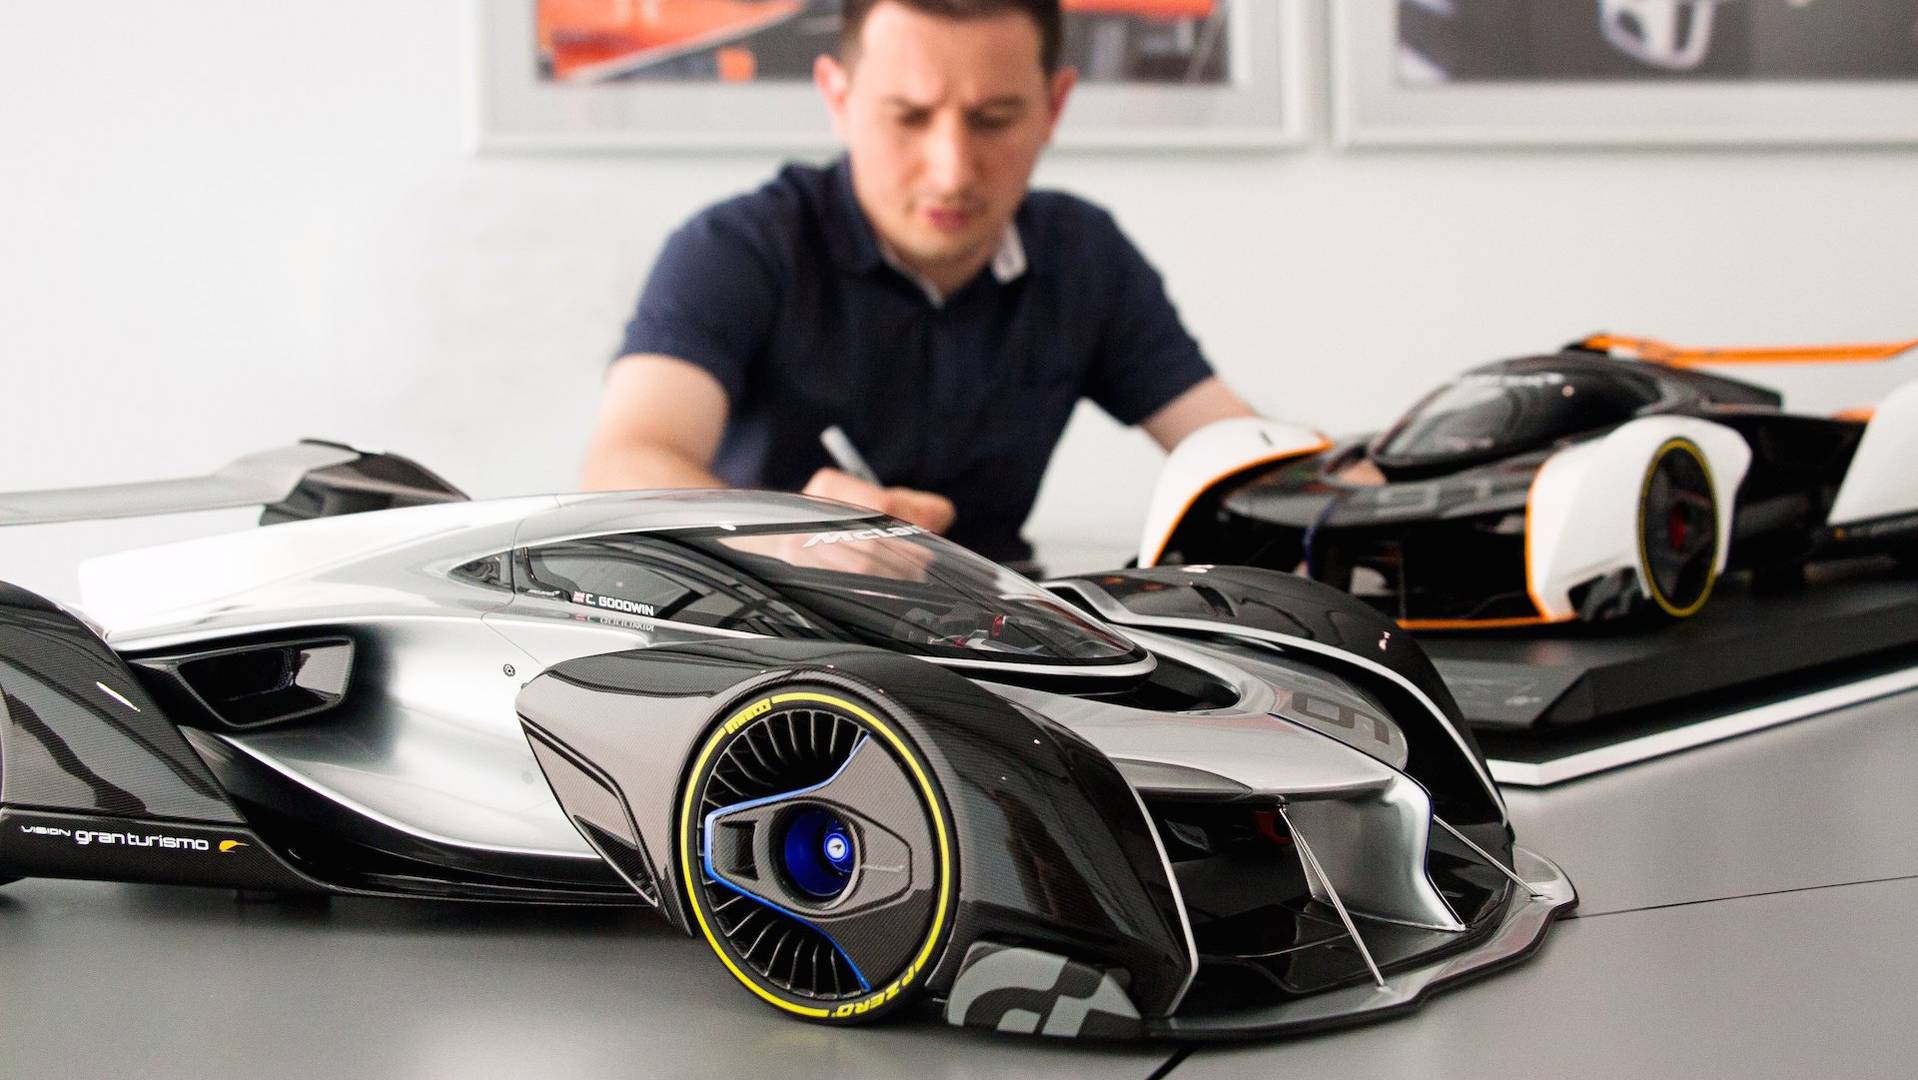 mclaren-ultimate-vision-gt-scale-model (23)